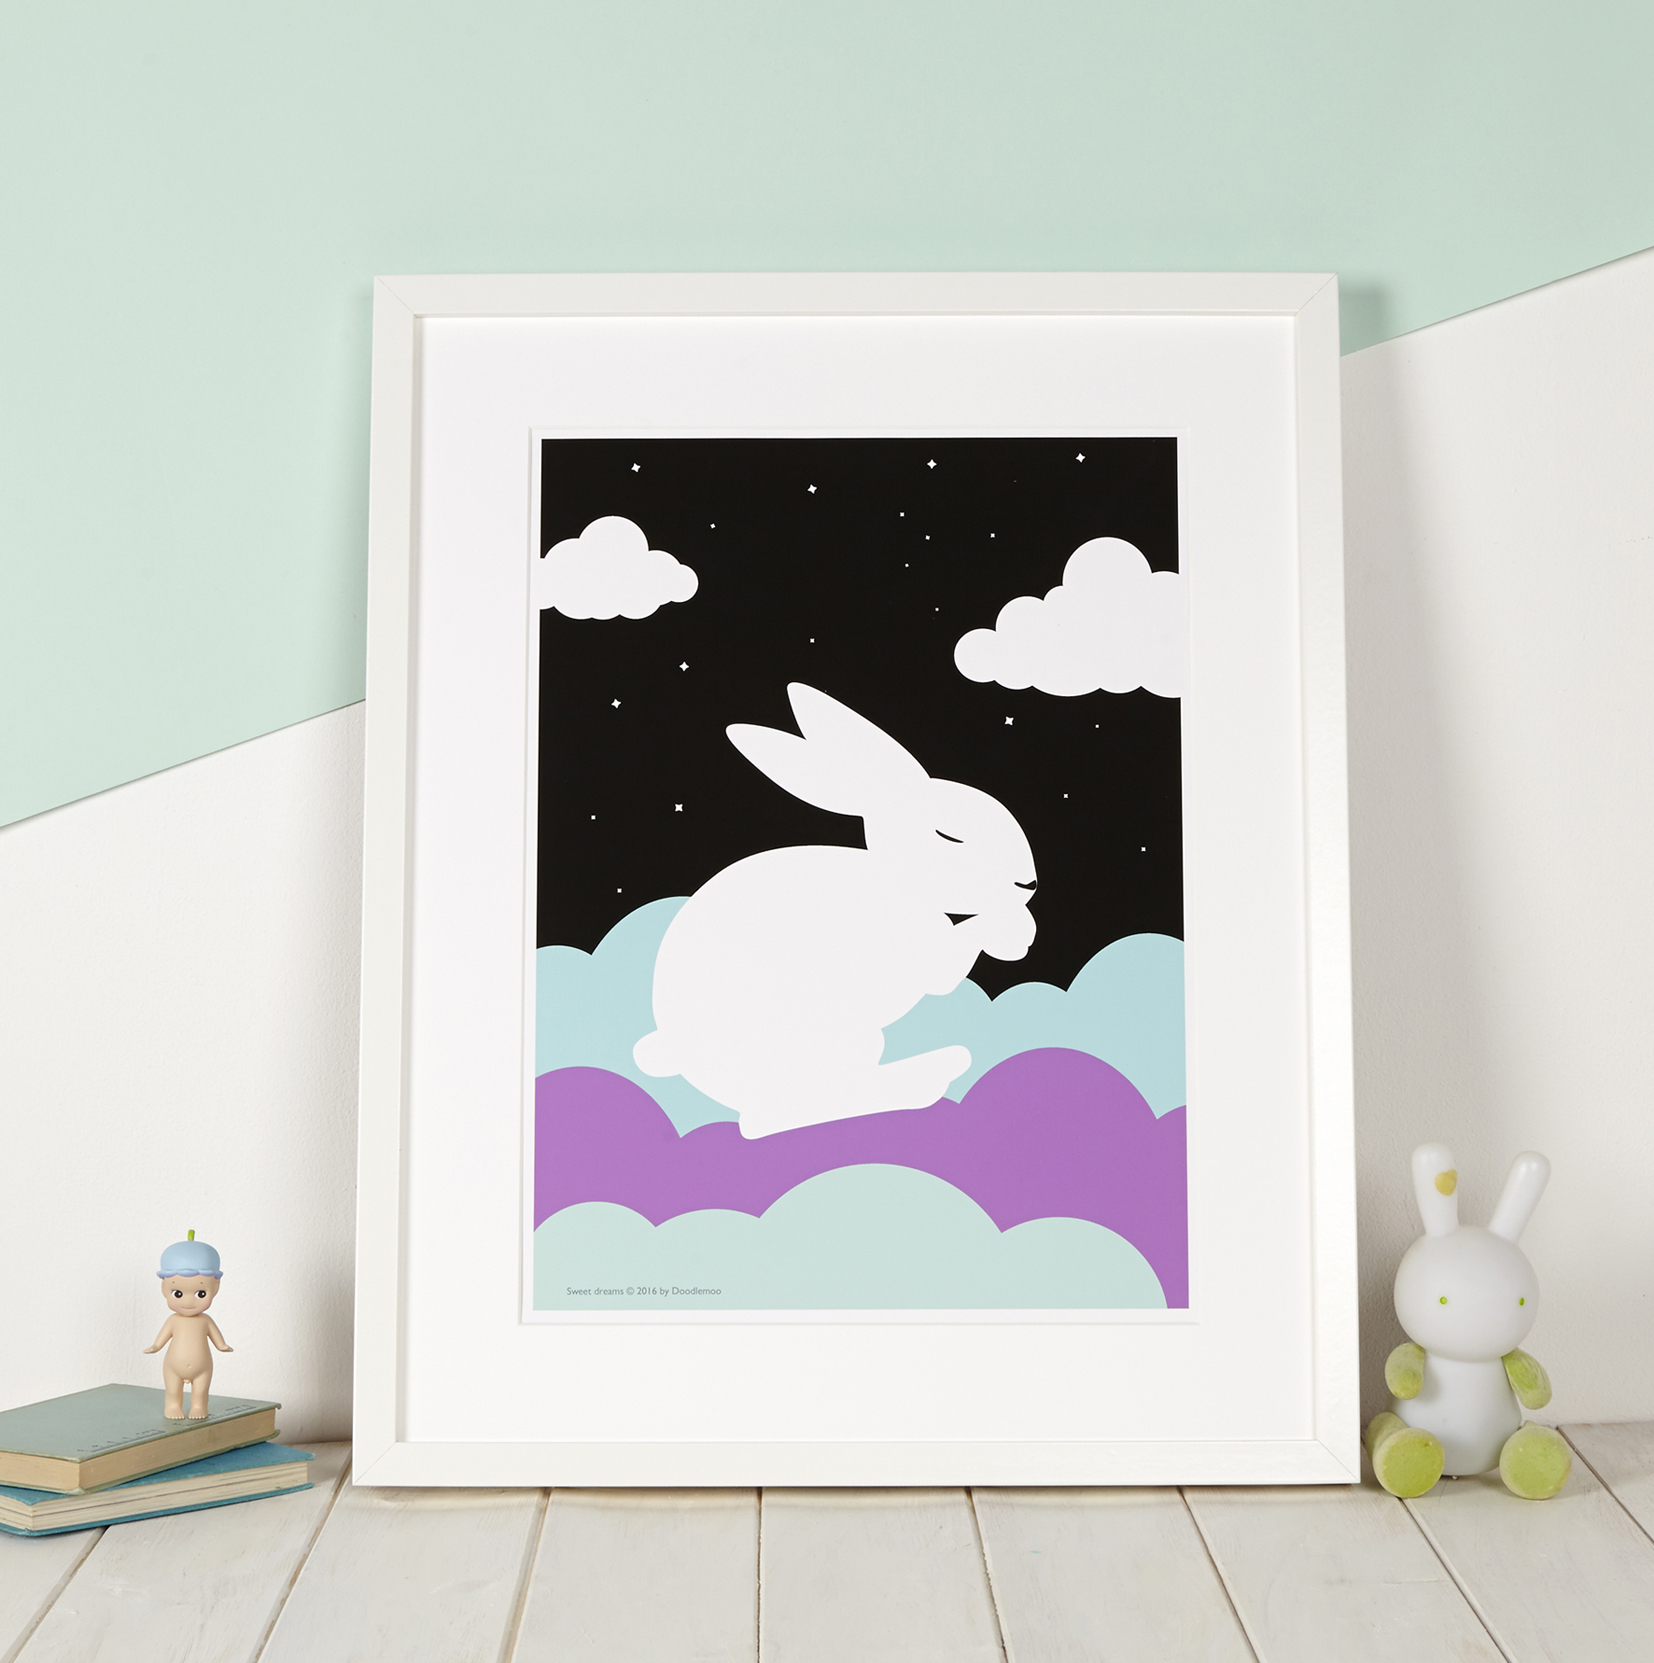 DoodleMoo   15% off everything from Friday 25th until Sunday 27th.